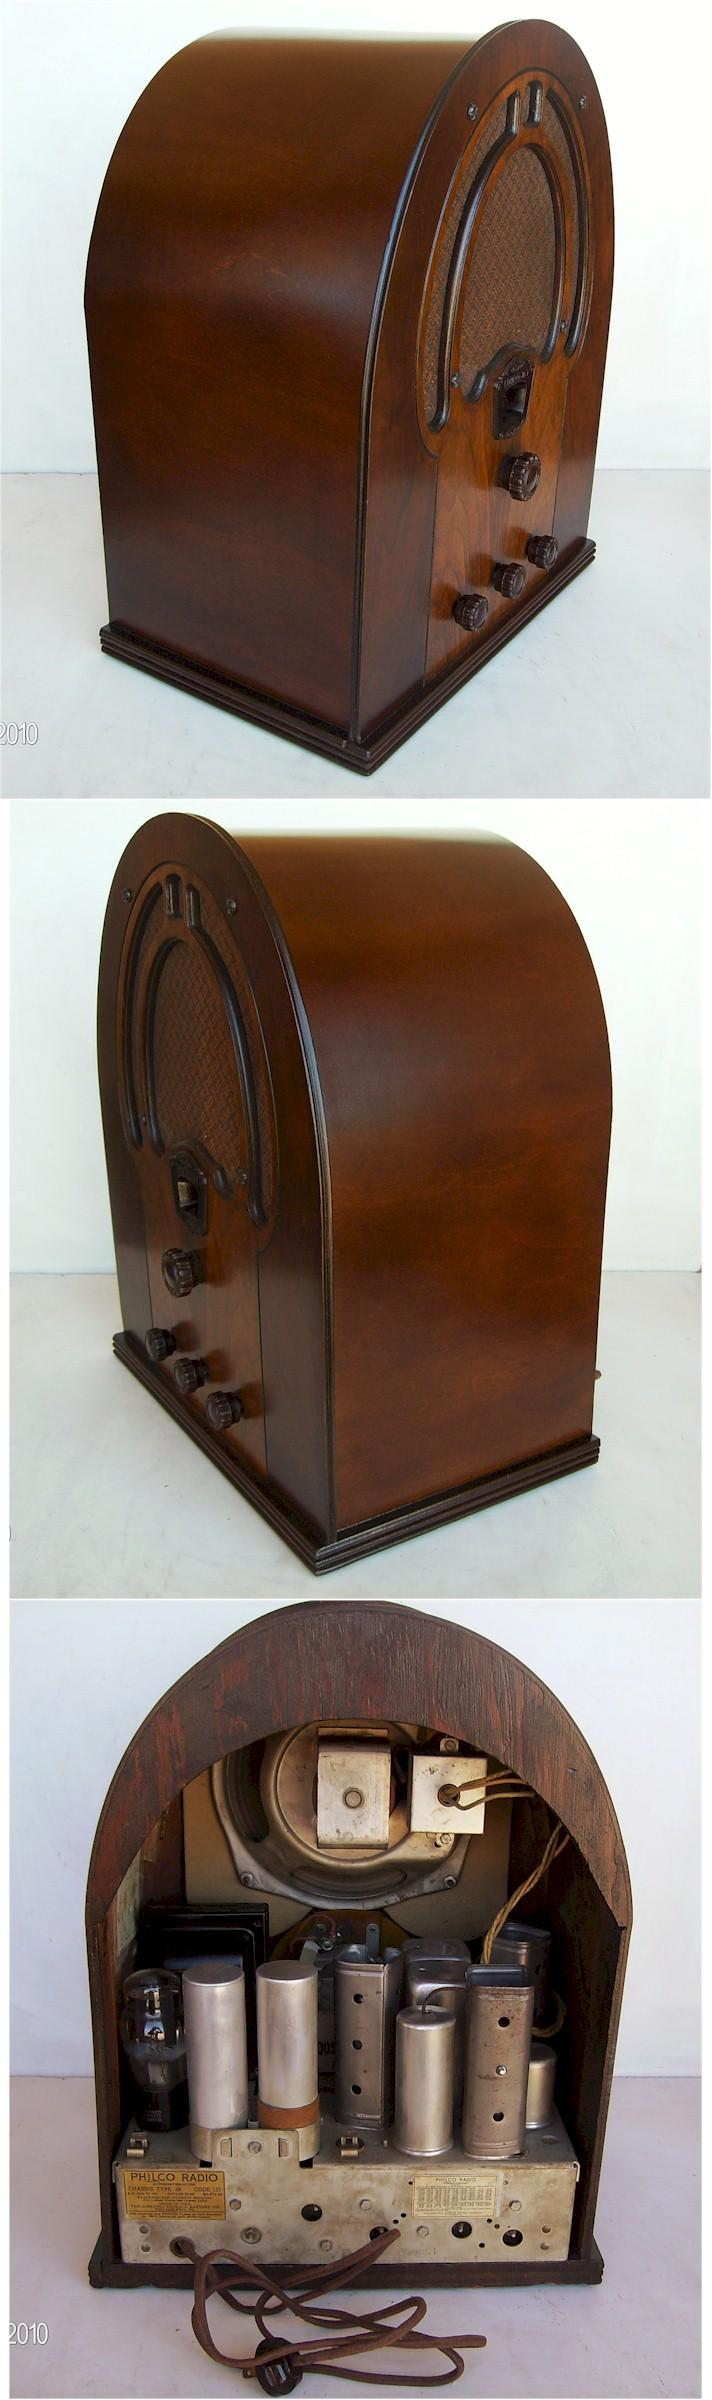 Philco 60 Cathedral (1934)